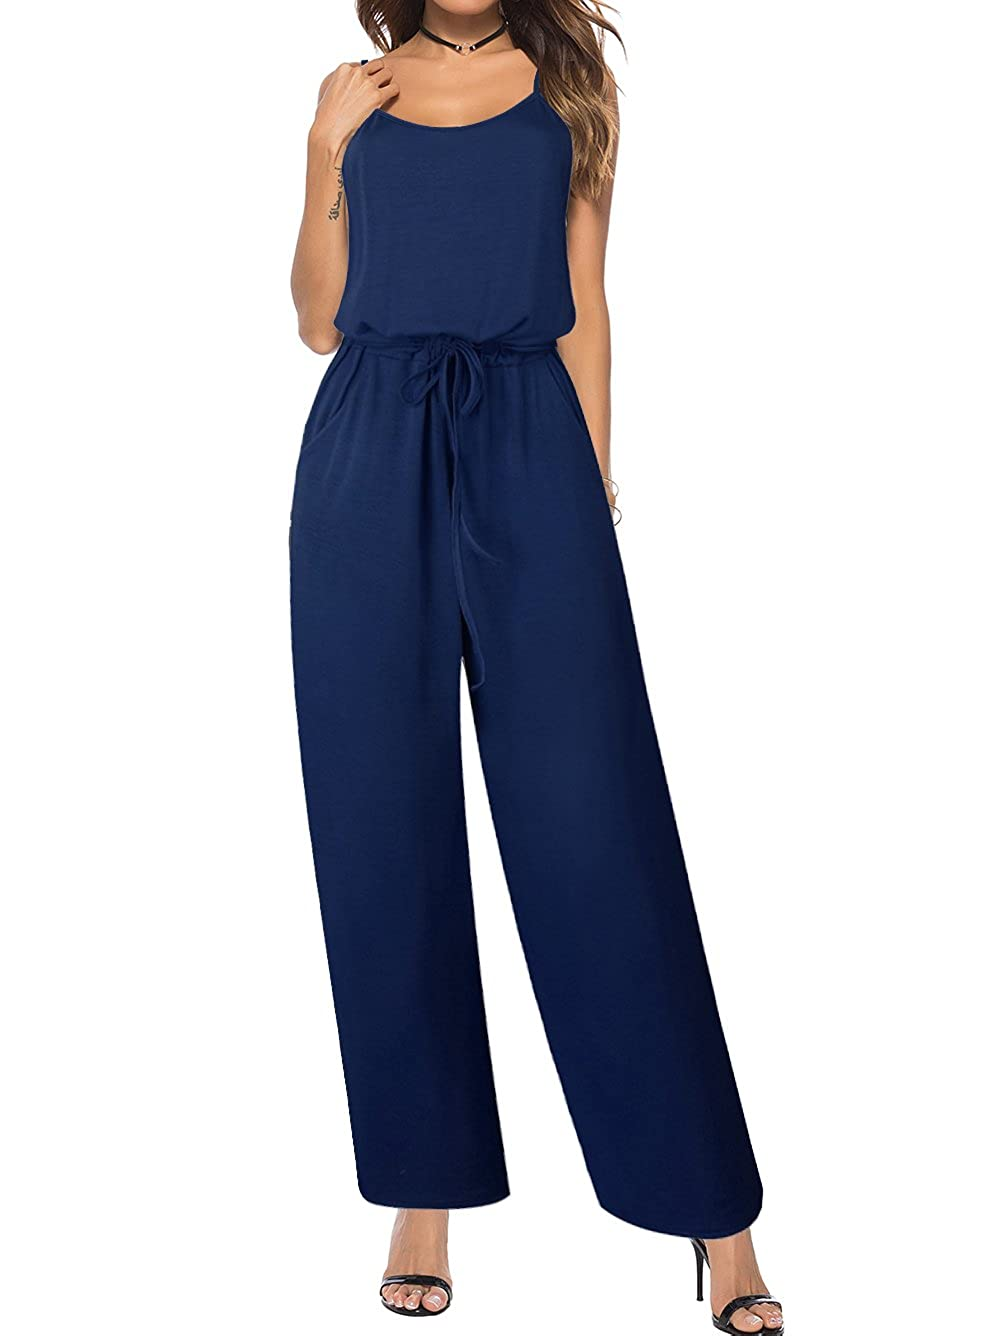 Famulily Womens Sleeveless Striped Jumpsuit Drawstring Wide Leg Trousers Outfit 270045F2